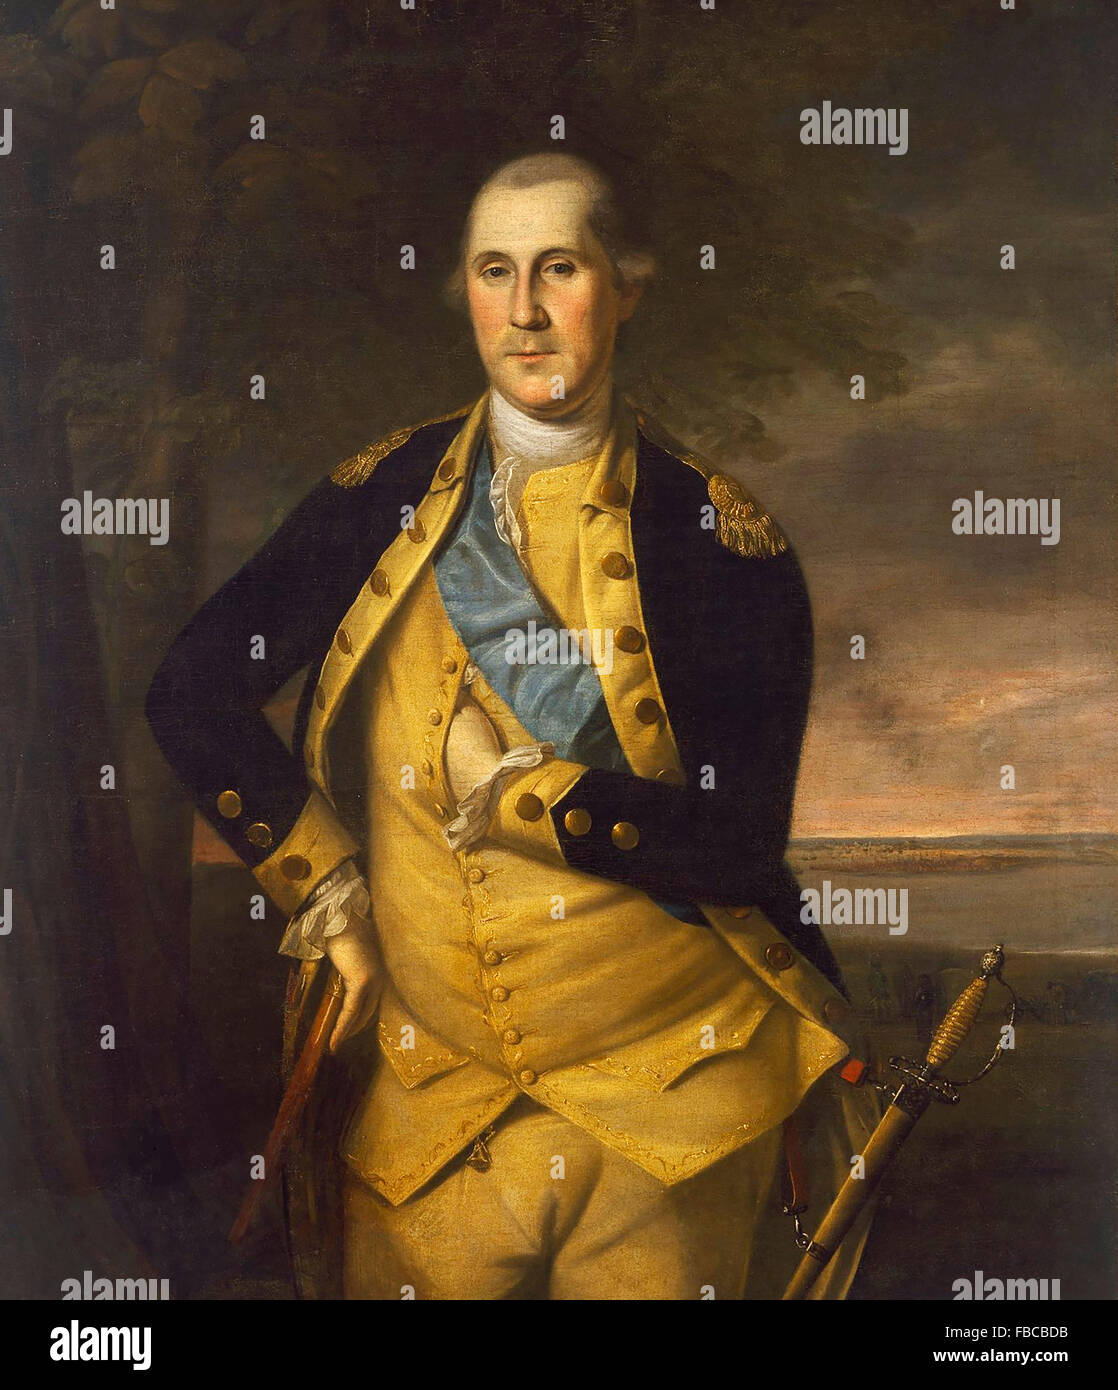 General George Washington, portrait by Charles Willson Peale, 1776 - Stock Image